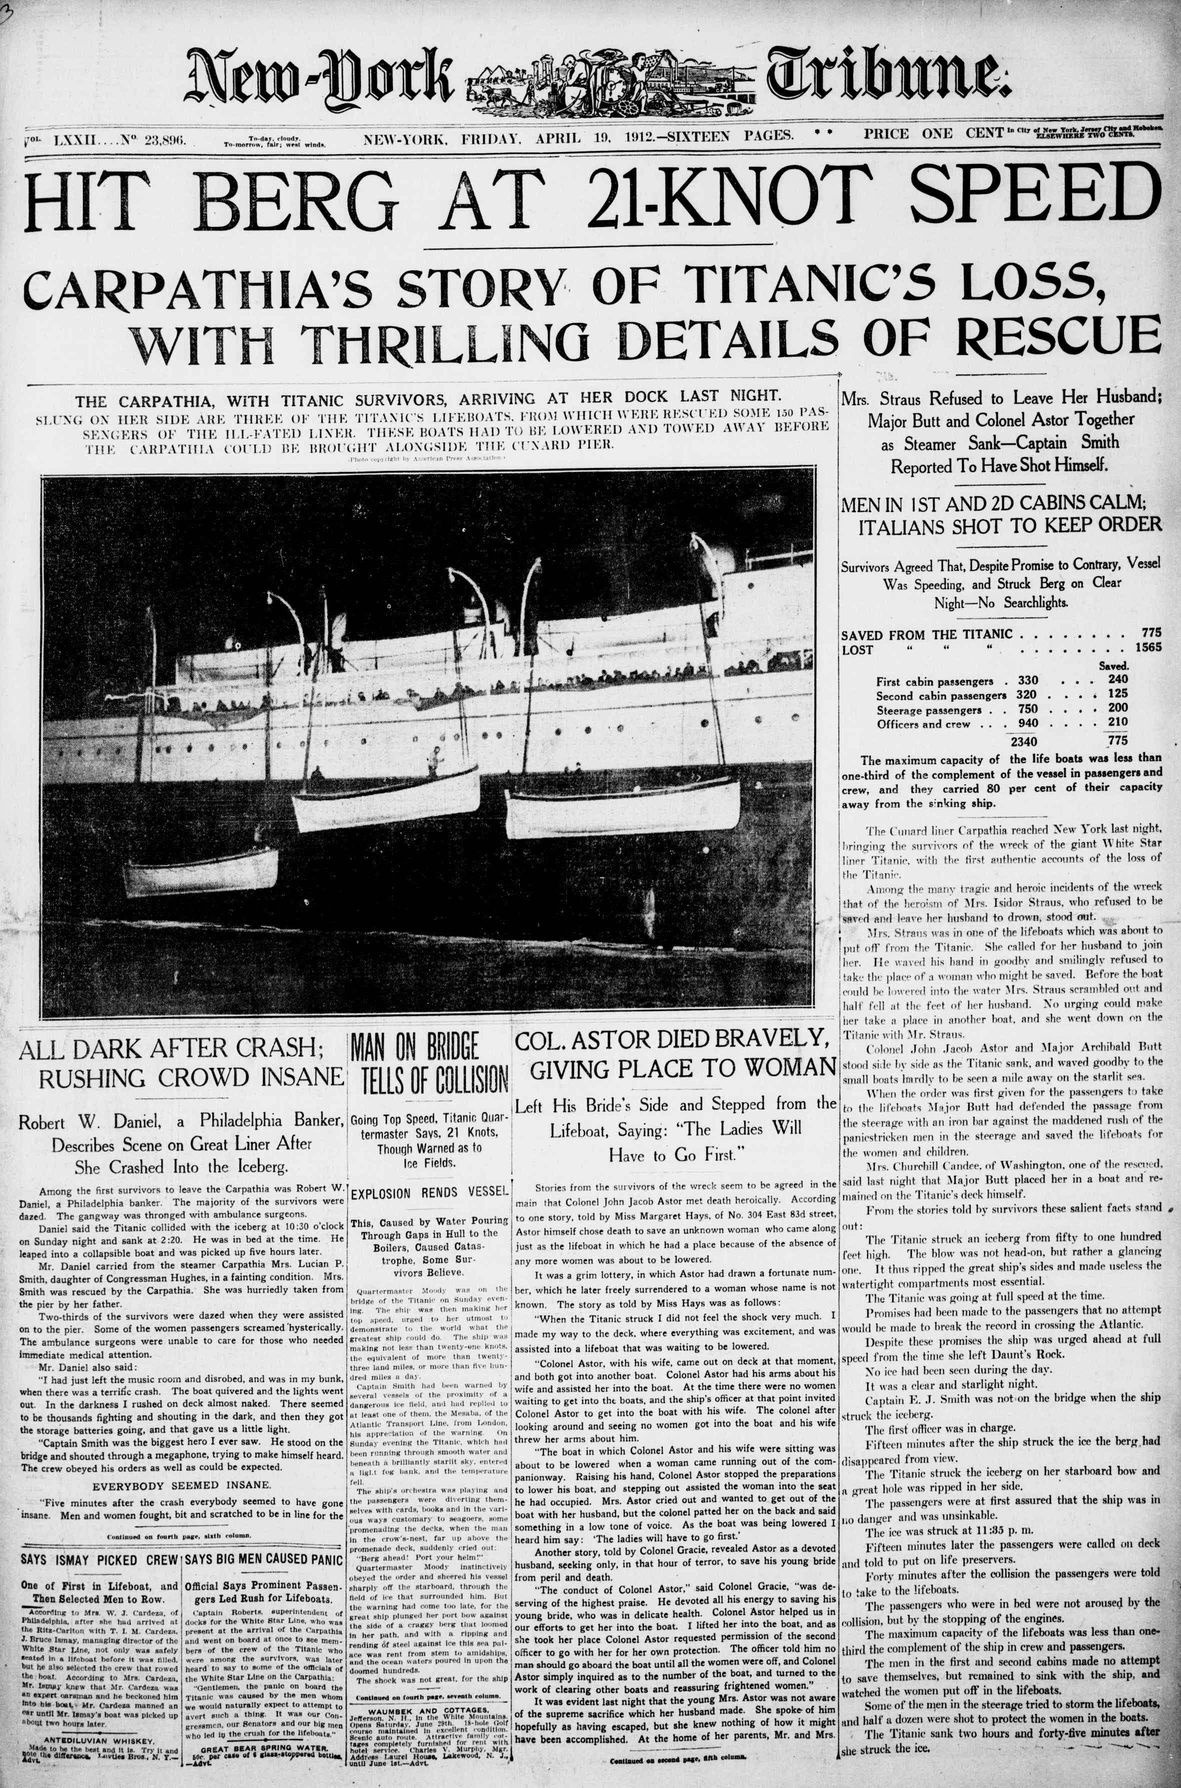 Titanic_Newspaper_Front_Page_1912-04-19_New-York_Tribune__April_19__1912__Page_1